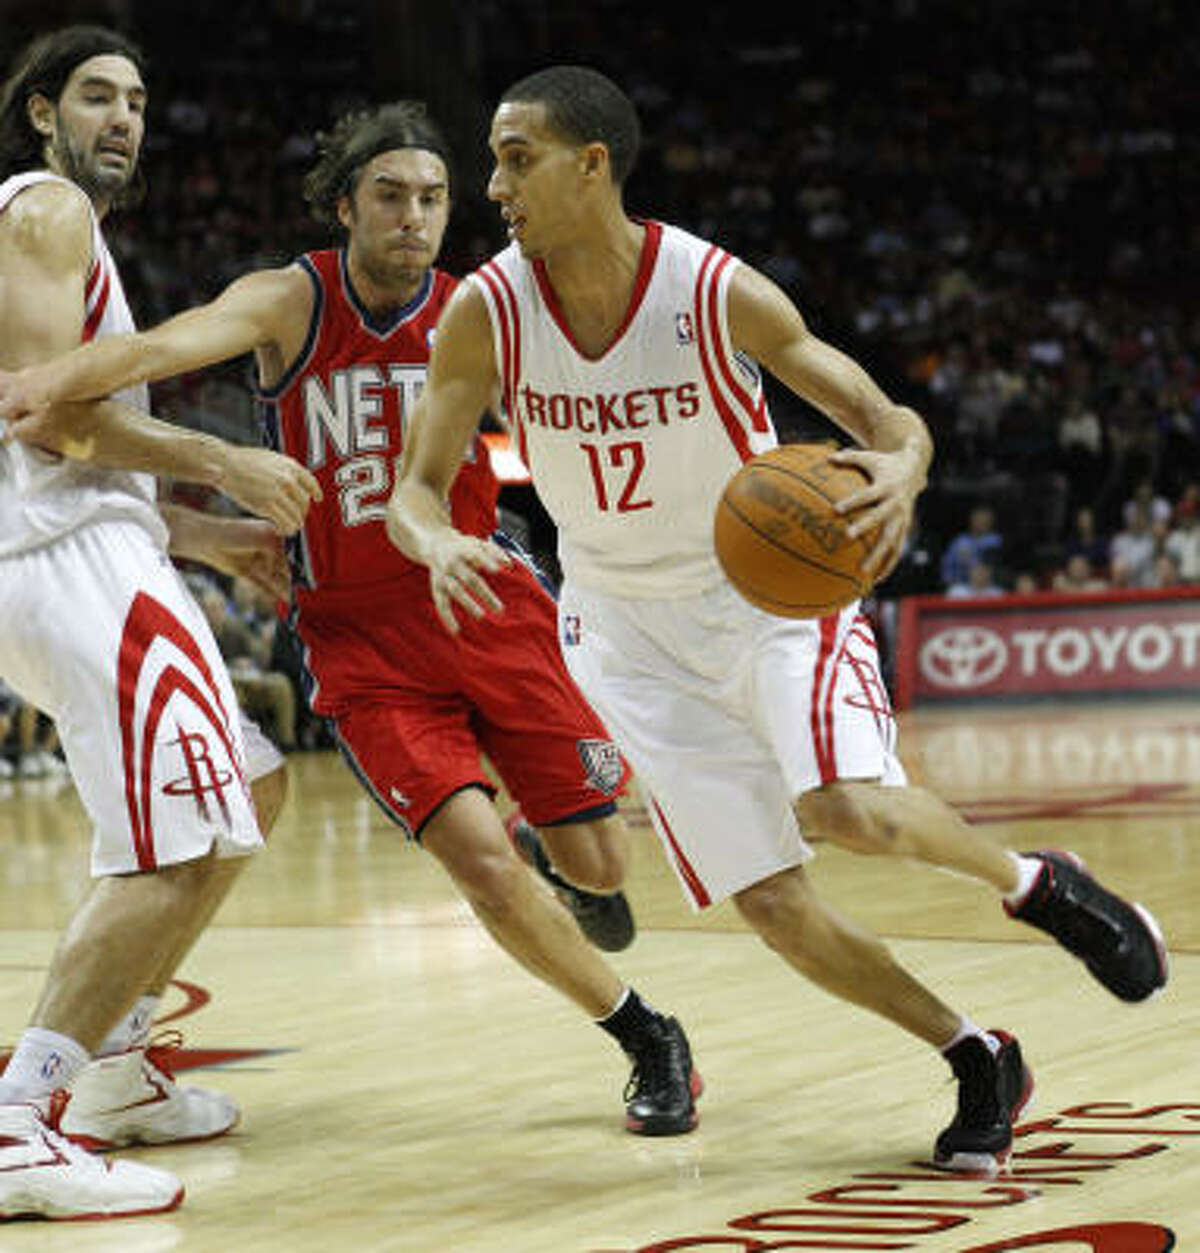 Feb. 26: Rockets 123, Nets 108 Rockets guard Kevin Martin, right, drives past New Jersey's Sasha Vujacic during the first quarter of Saturday night's game at Toyota Center. Martin finished with a game-high 30 points.